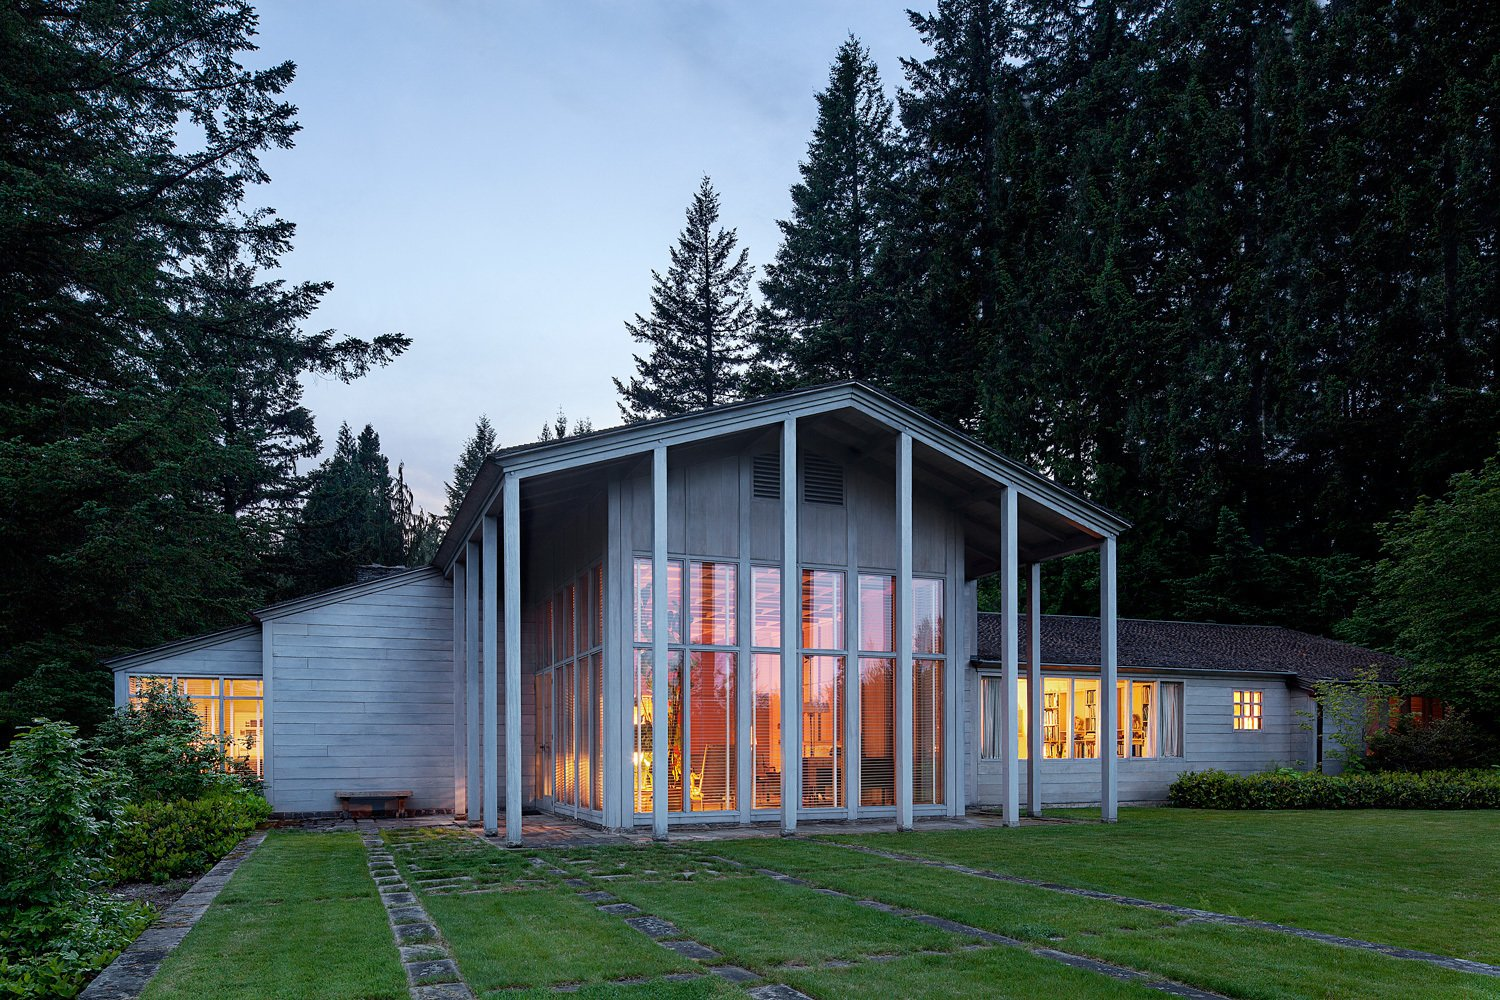 Exterior and House Building Type In the photos that follow, we take a look at the product offerings inspired by the house, which Yeon designed when he was only 27 years old.  Photos from Classic Modernist House in Portland Inspires a Lighting and Furniture Line